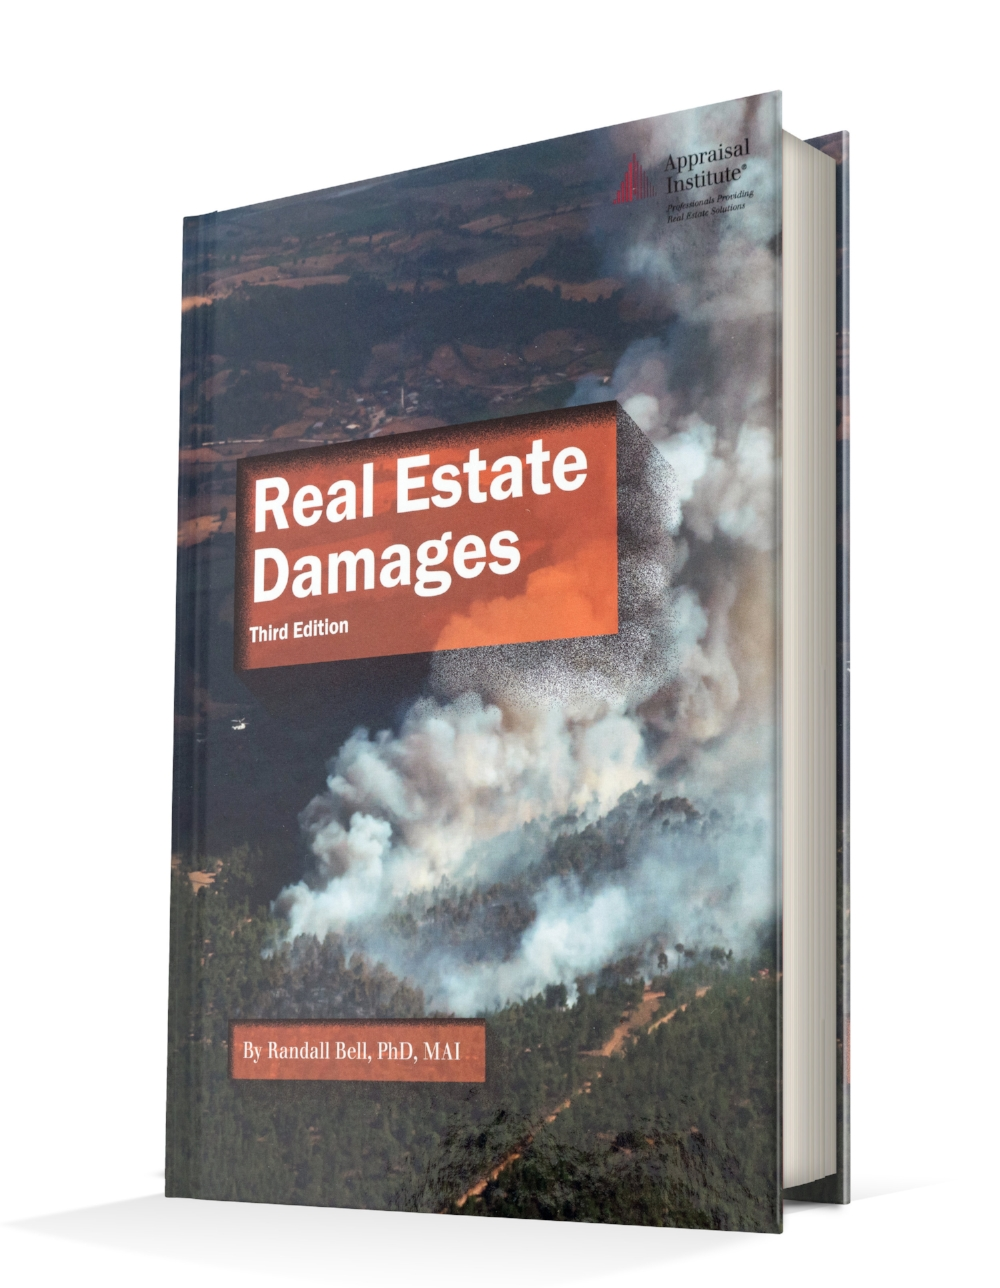 Real Estate Damages, 3rd Edition         - Written by Randall Bell, PhD, MAIMost real estate economists and appraisers will be asked to value property subject to detrimental conditions at some point in their careers. The unique problems that arise in these complex valuation situations can be addressed by applying fundamental economic principles and innovative valuation techniques. A comprehensive and valuable resource for all real estate professionals, Real Estate Damages: Applied Economics and Detrimental Conditions, 3rd Edition, provides a straightforward approach to solving these complex valuation problems.